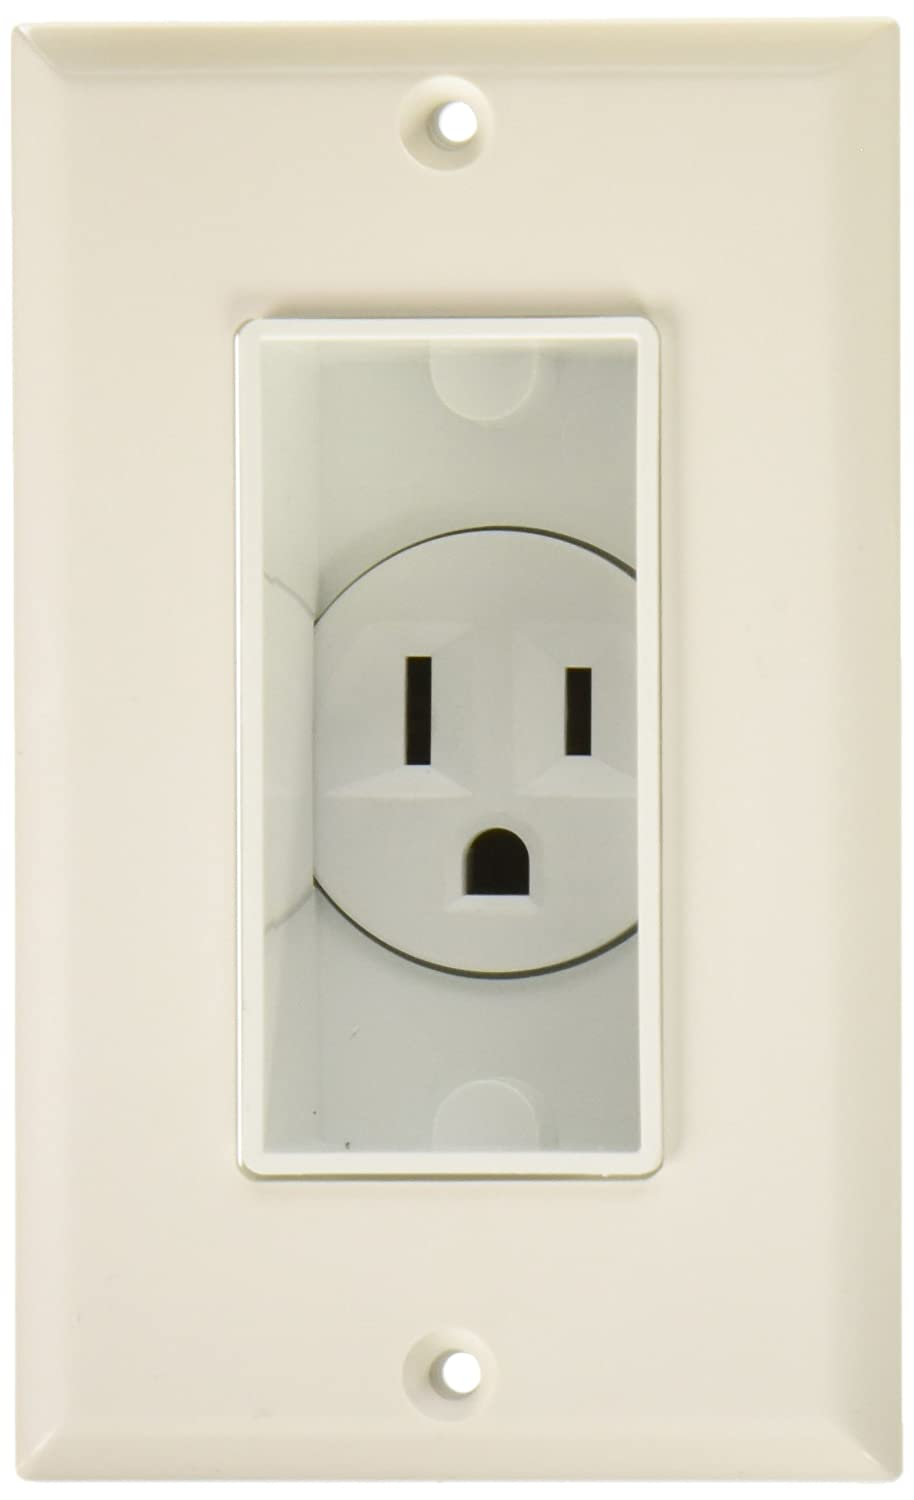 MIDLITE 4641-W Single Gang Décor Recessed Receptacle